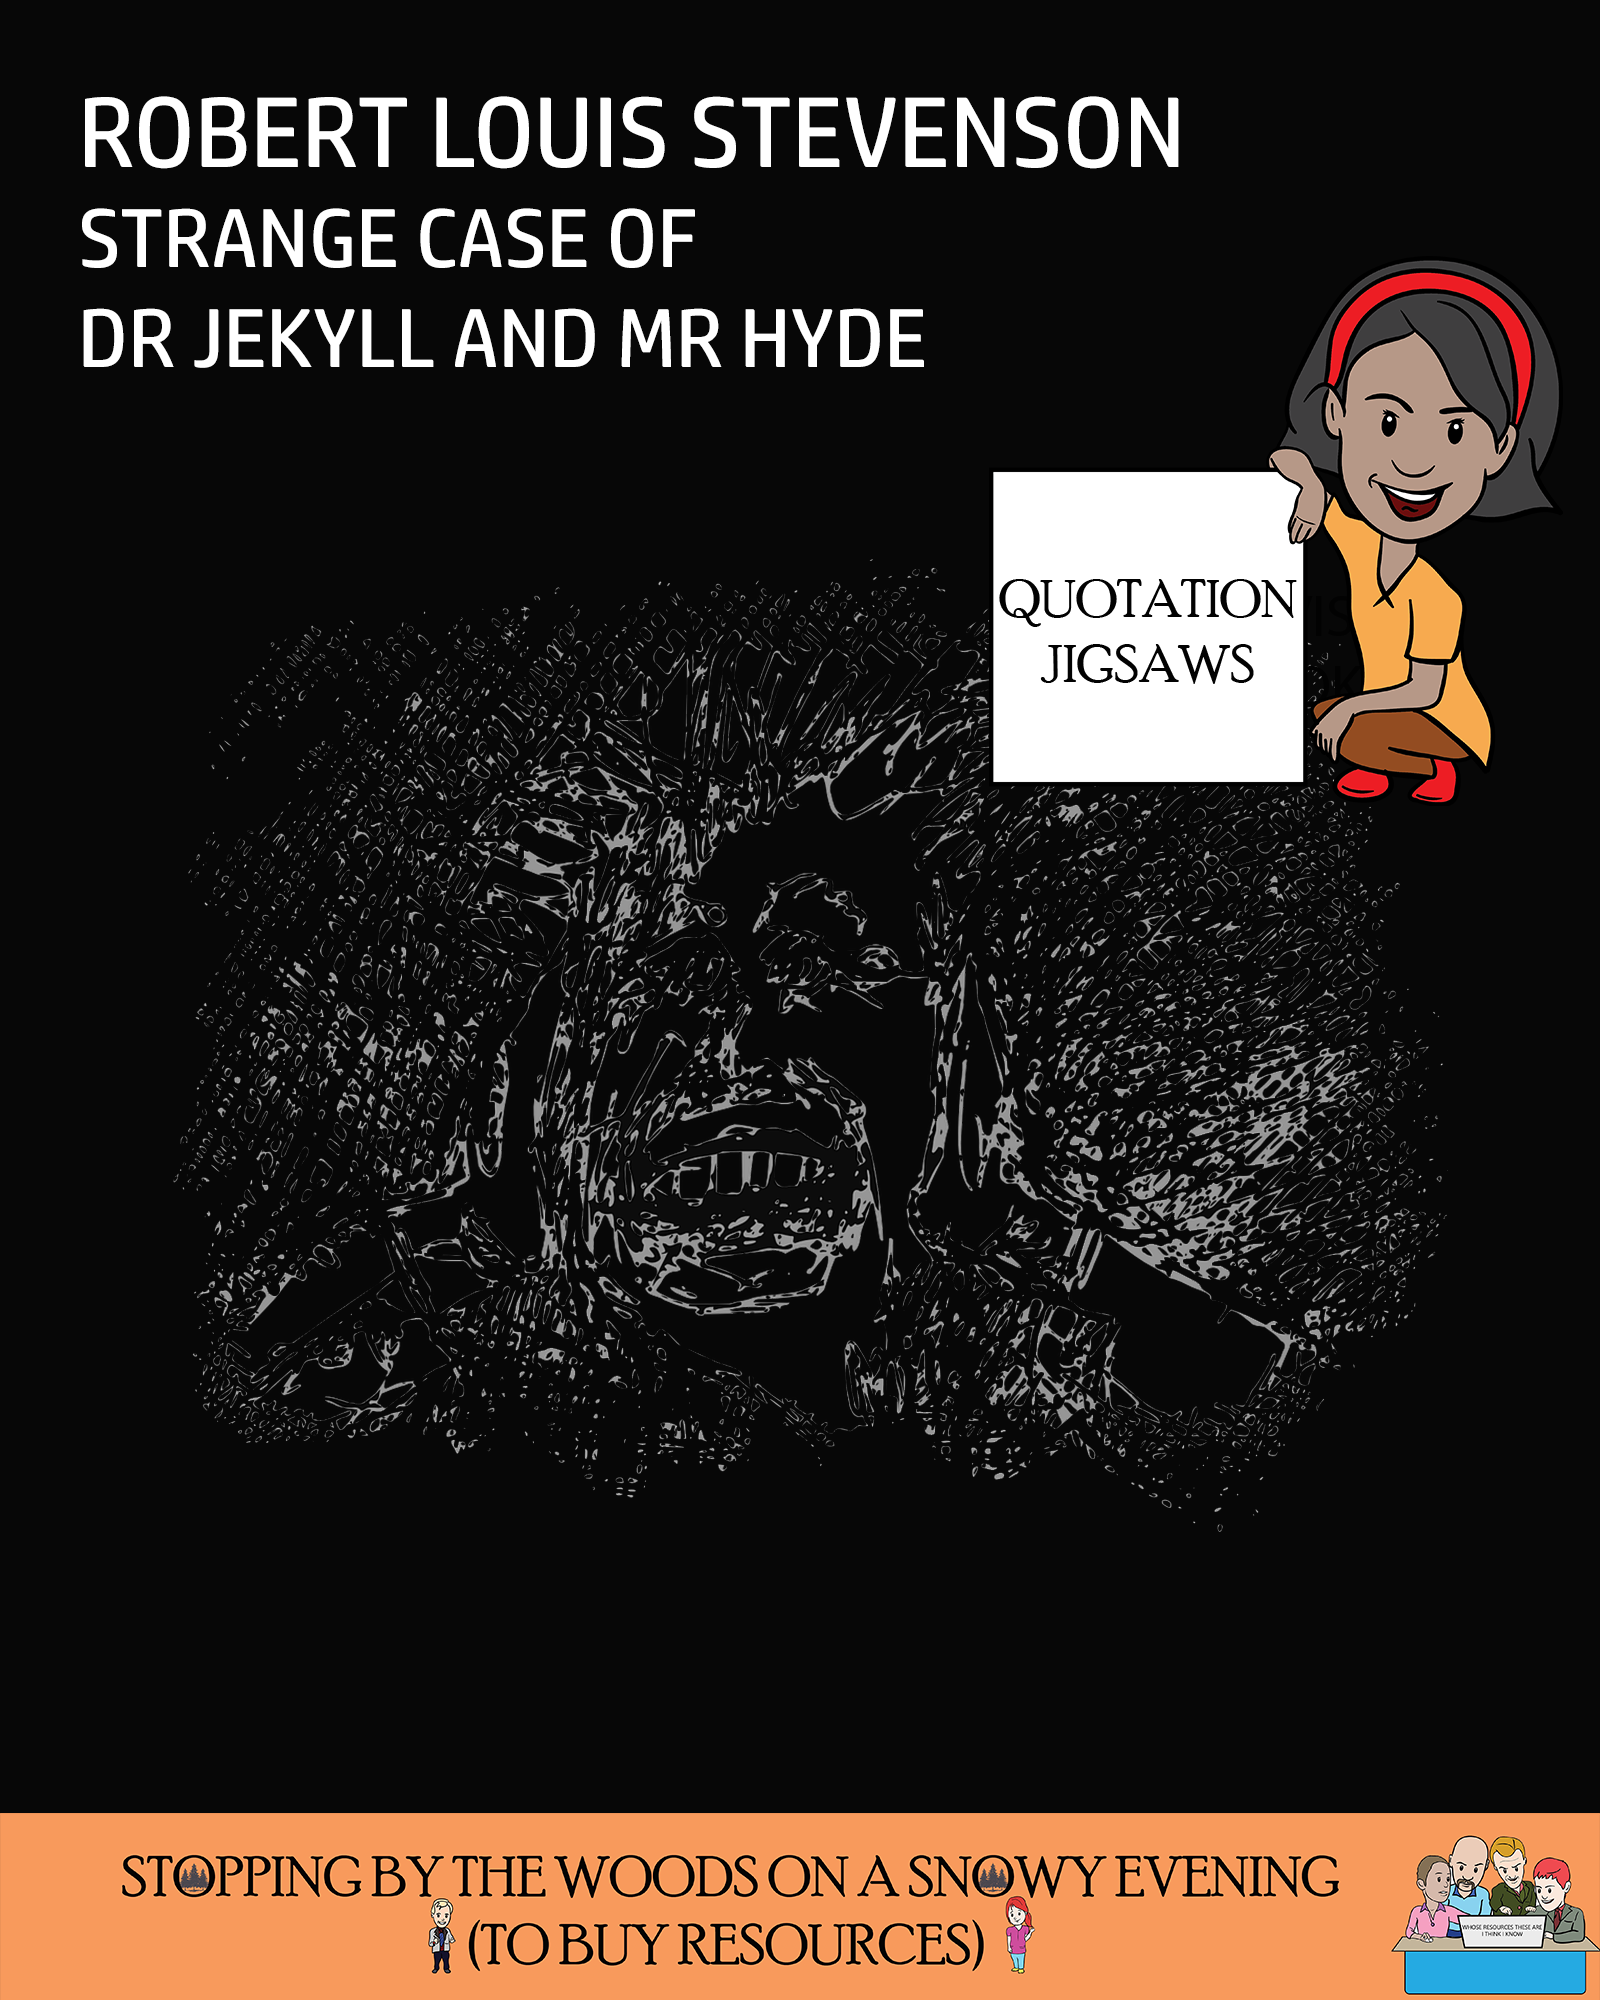 Quotation Jigsaws - Strange Case of Dr Jekyll and Mr Hyde - Chapters 1-10